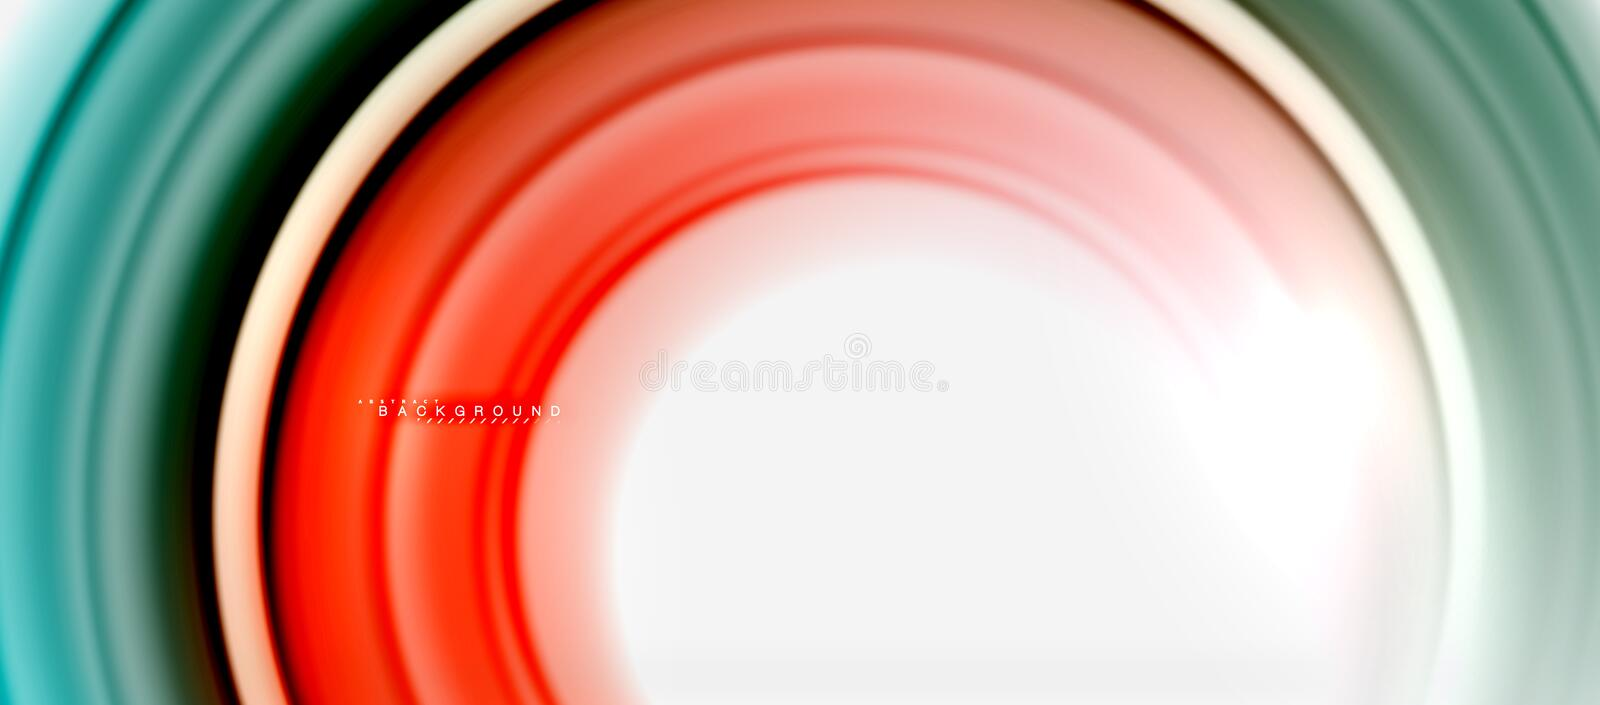 Rainbow fluid color line abstract background - swirl and circles, twisted liquid colours design, colorful marble or vector illustration